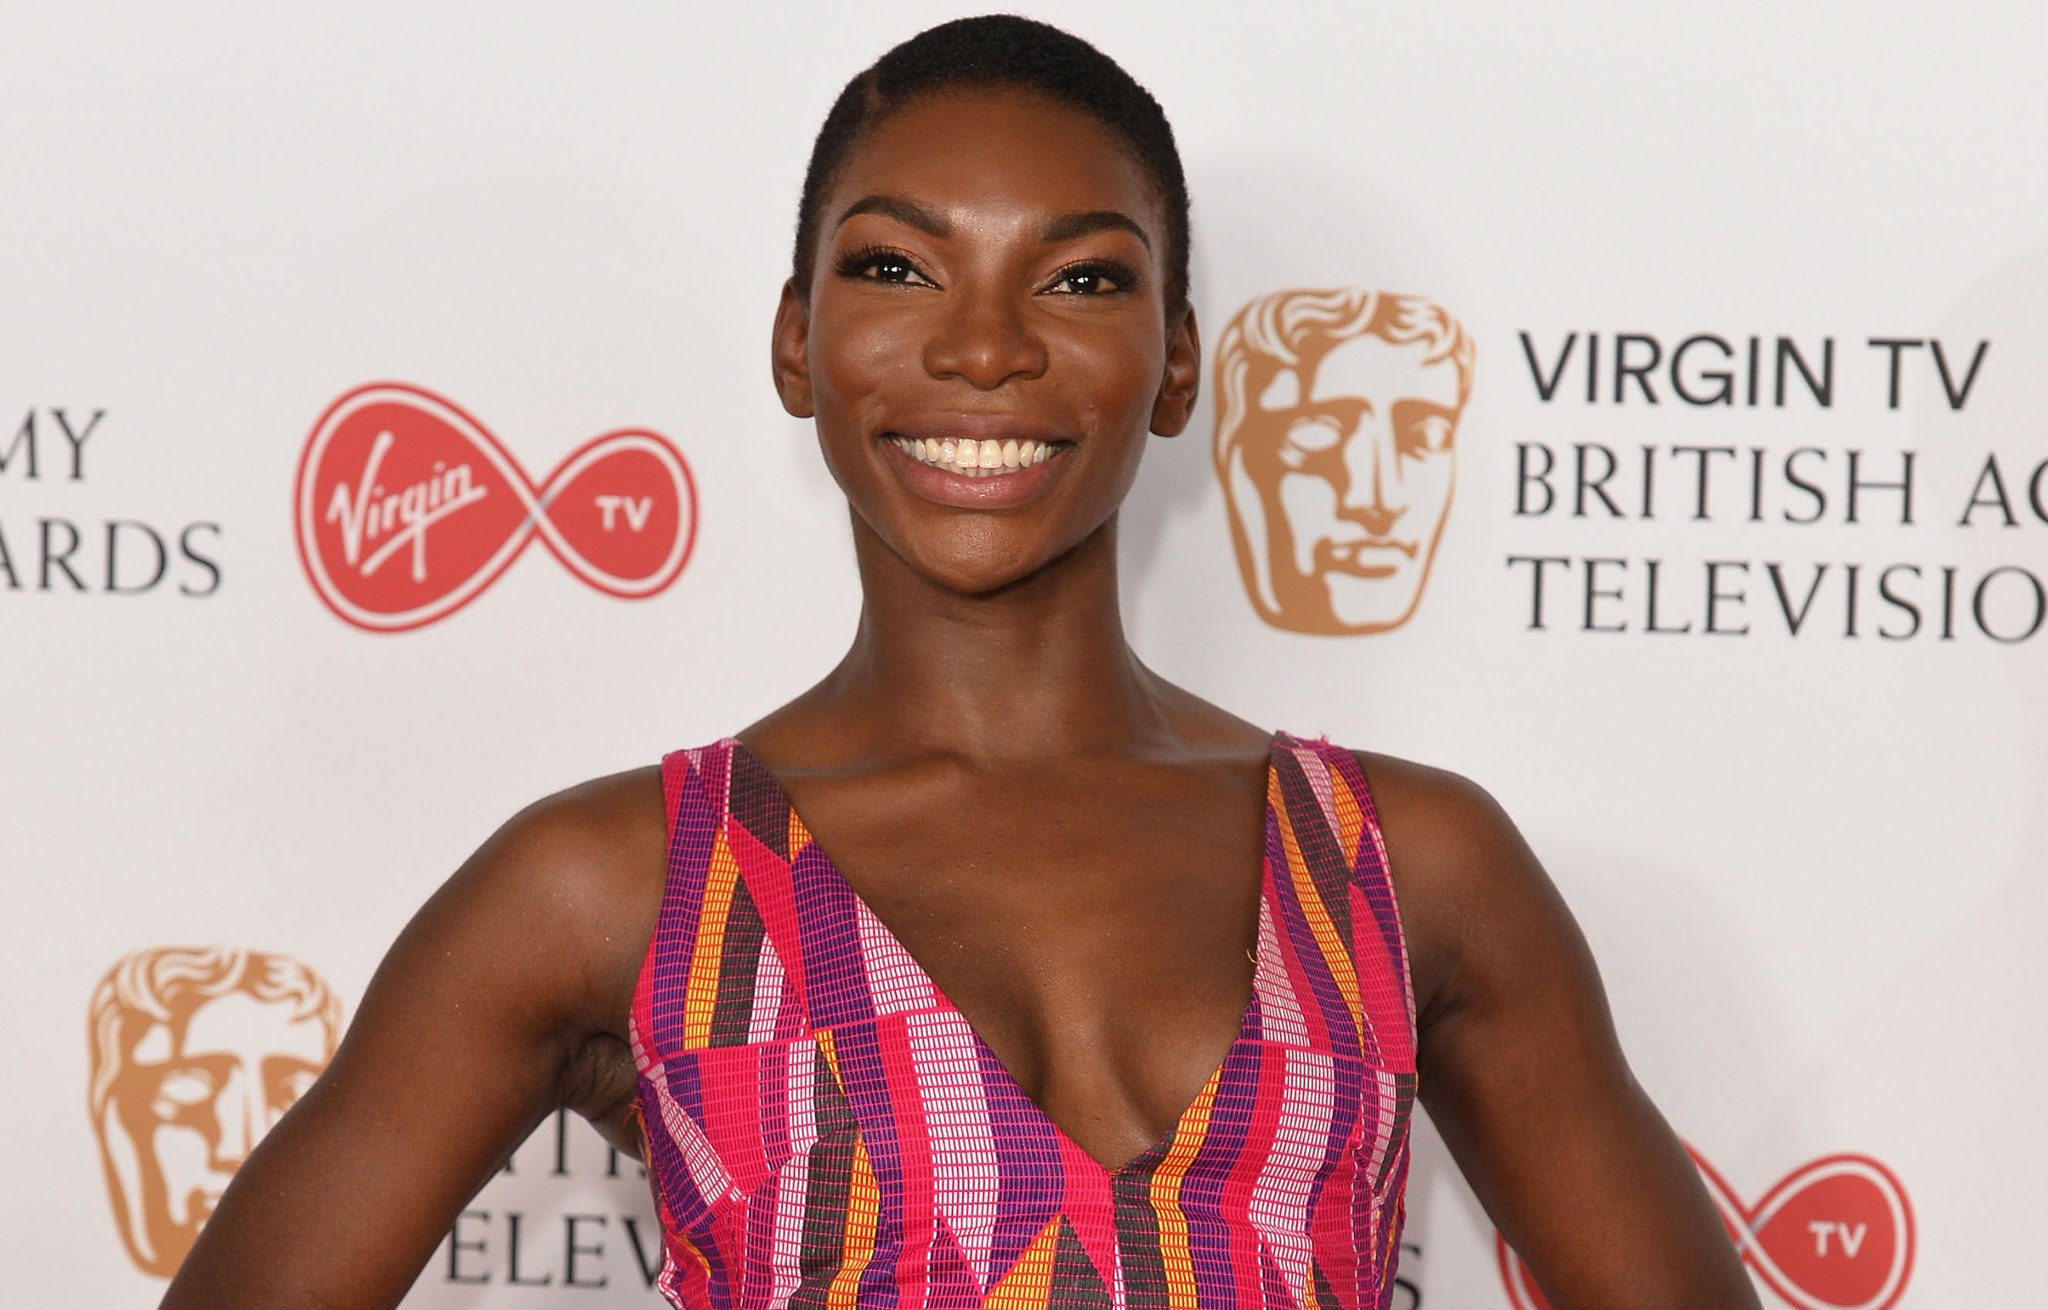 .@MichaelaCoel says she will write a new season of Chewing Gum after all. https://t.co/jplrtSjtVZ https://t.co/byTArxSDuW